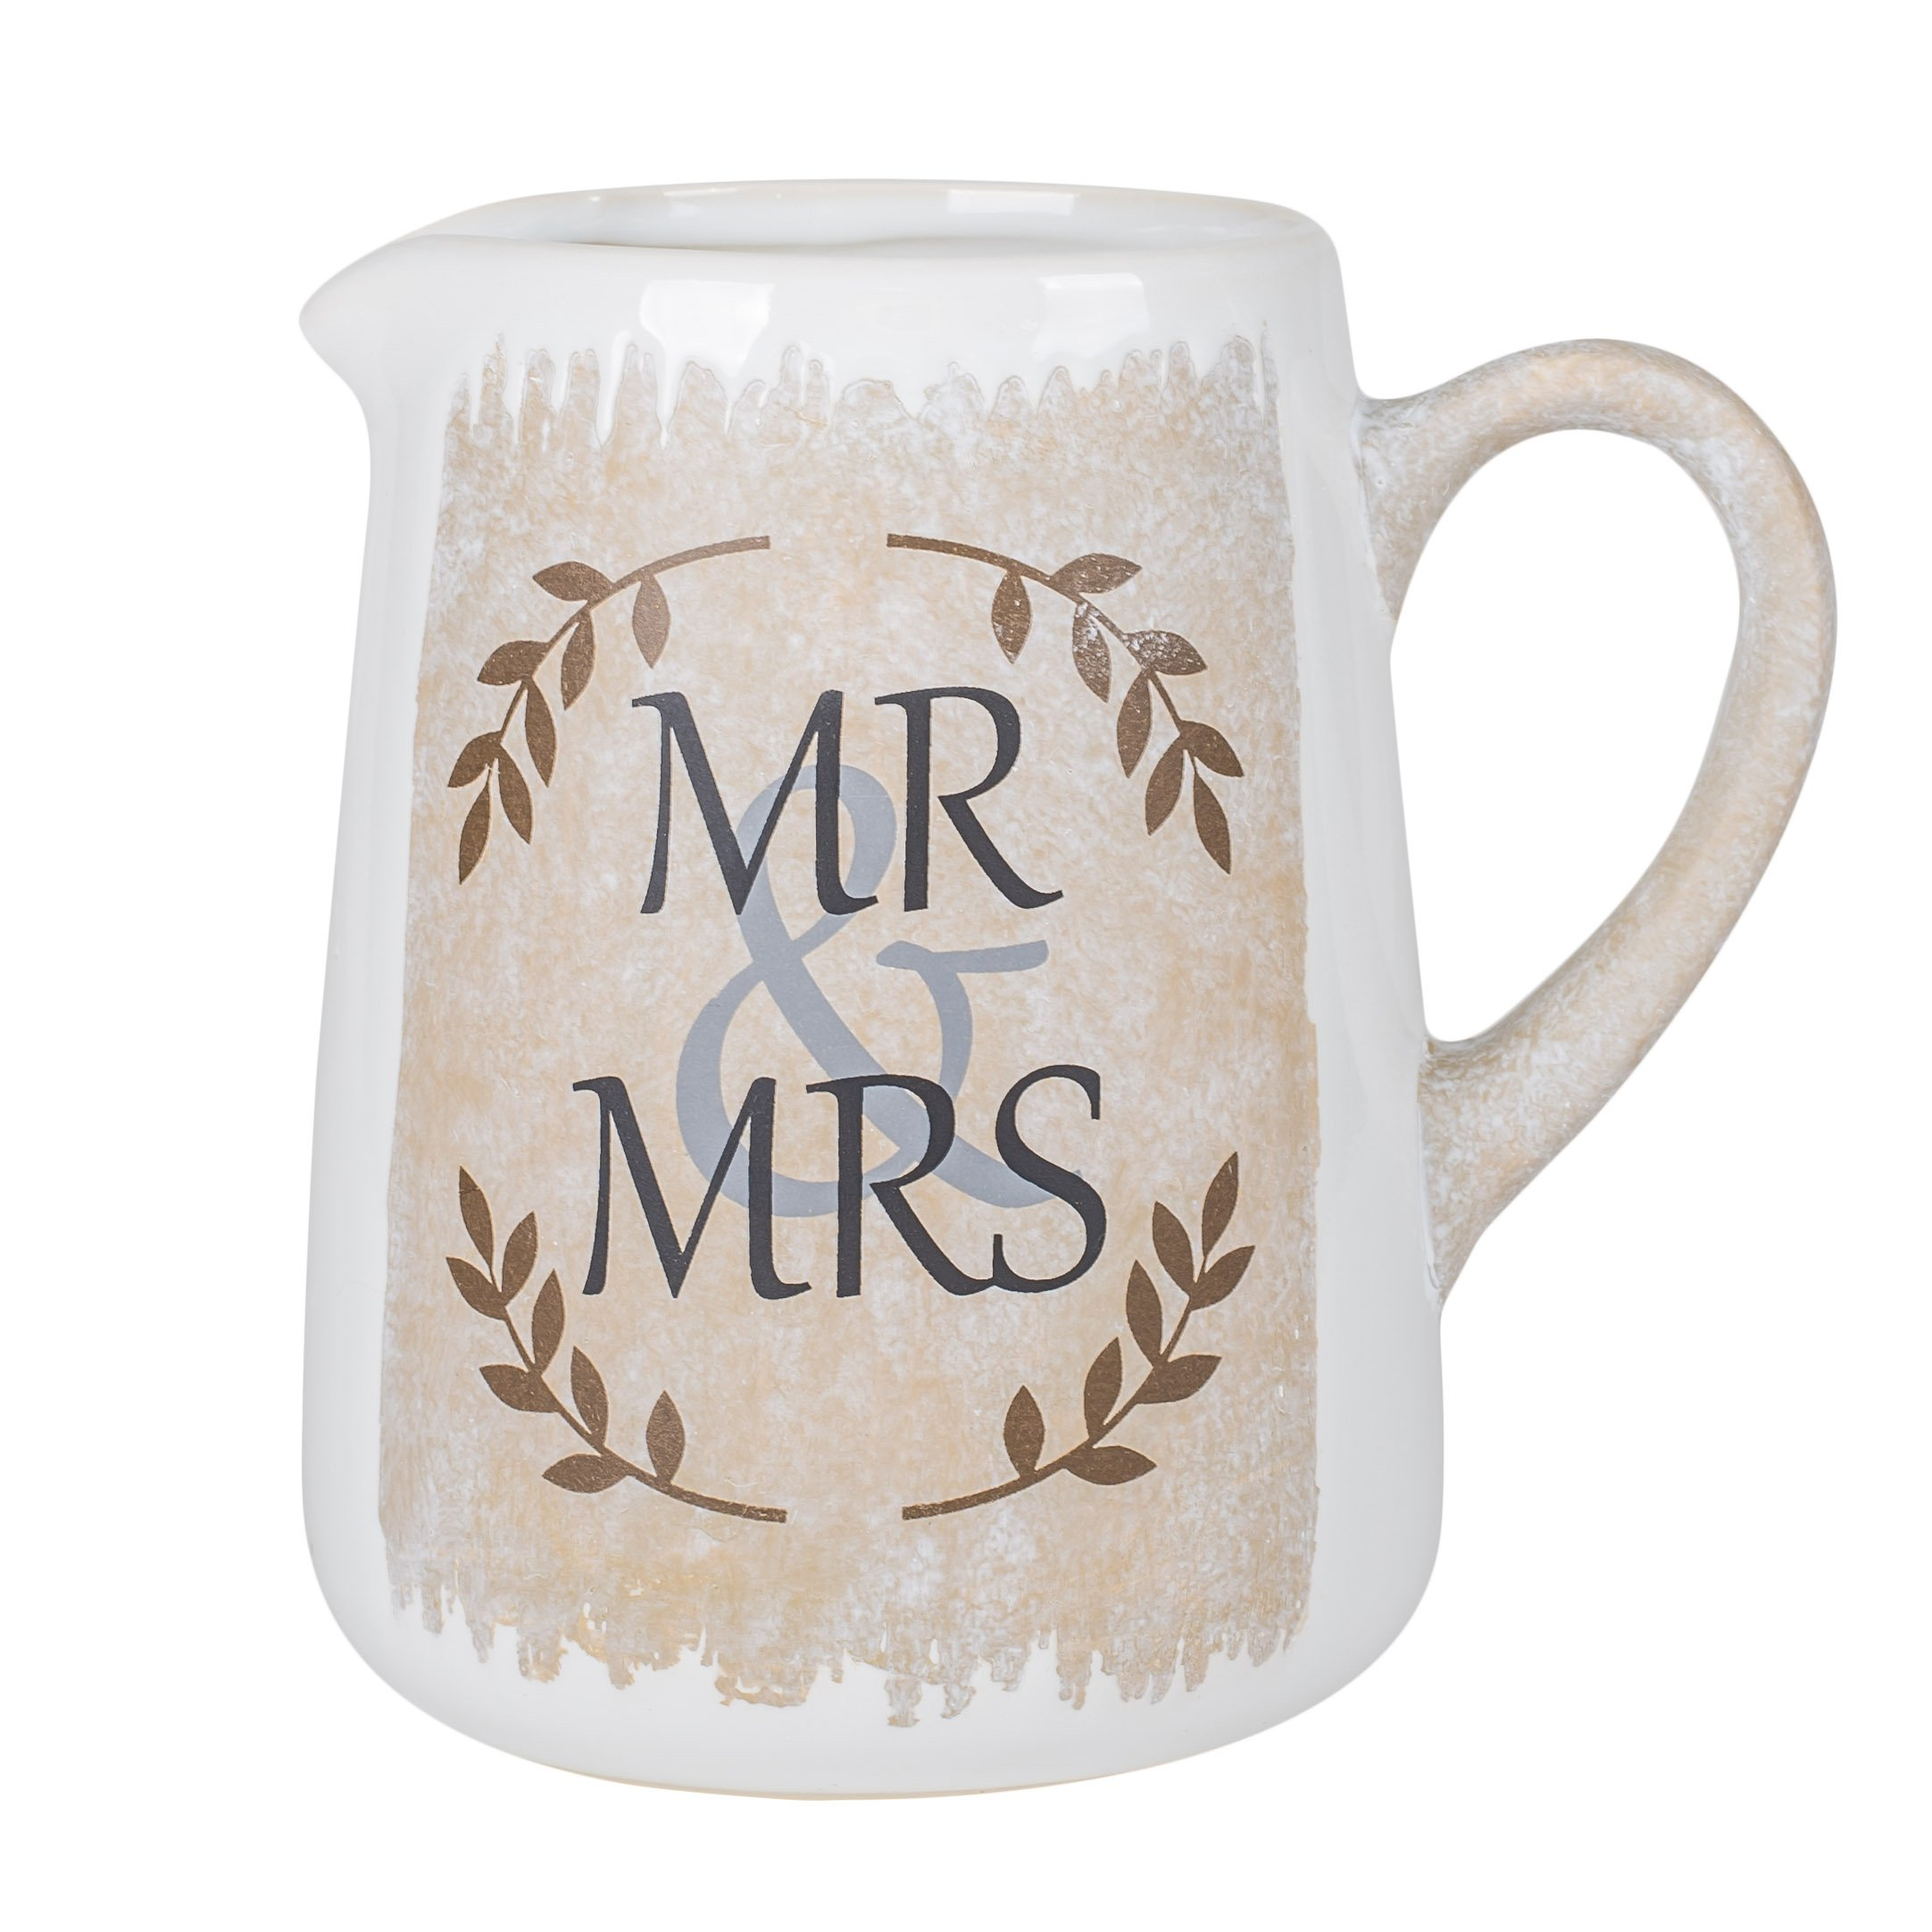 Mr. & Mrs. Country Chic 7.25 Inch Ceramic Carafe Pitcher Vase